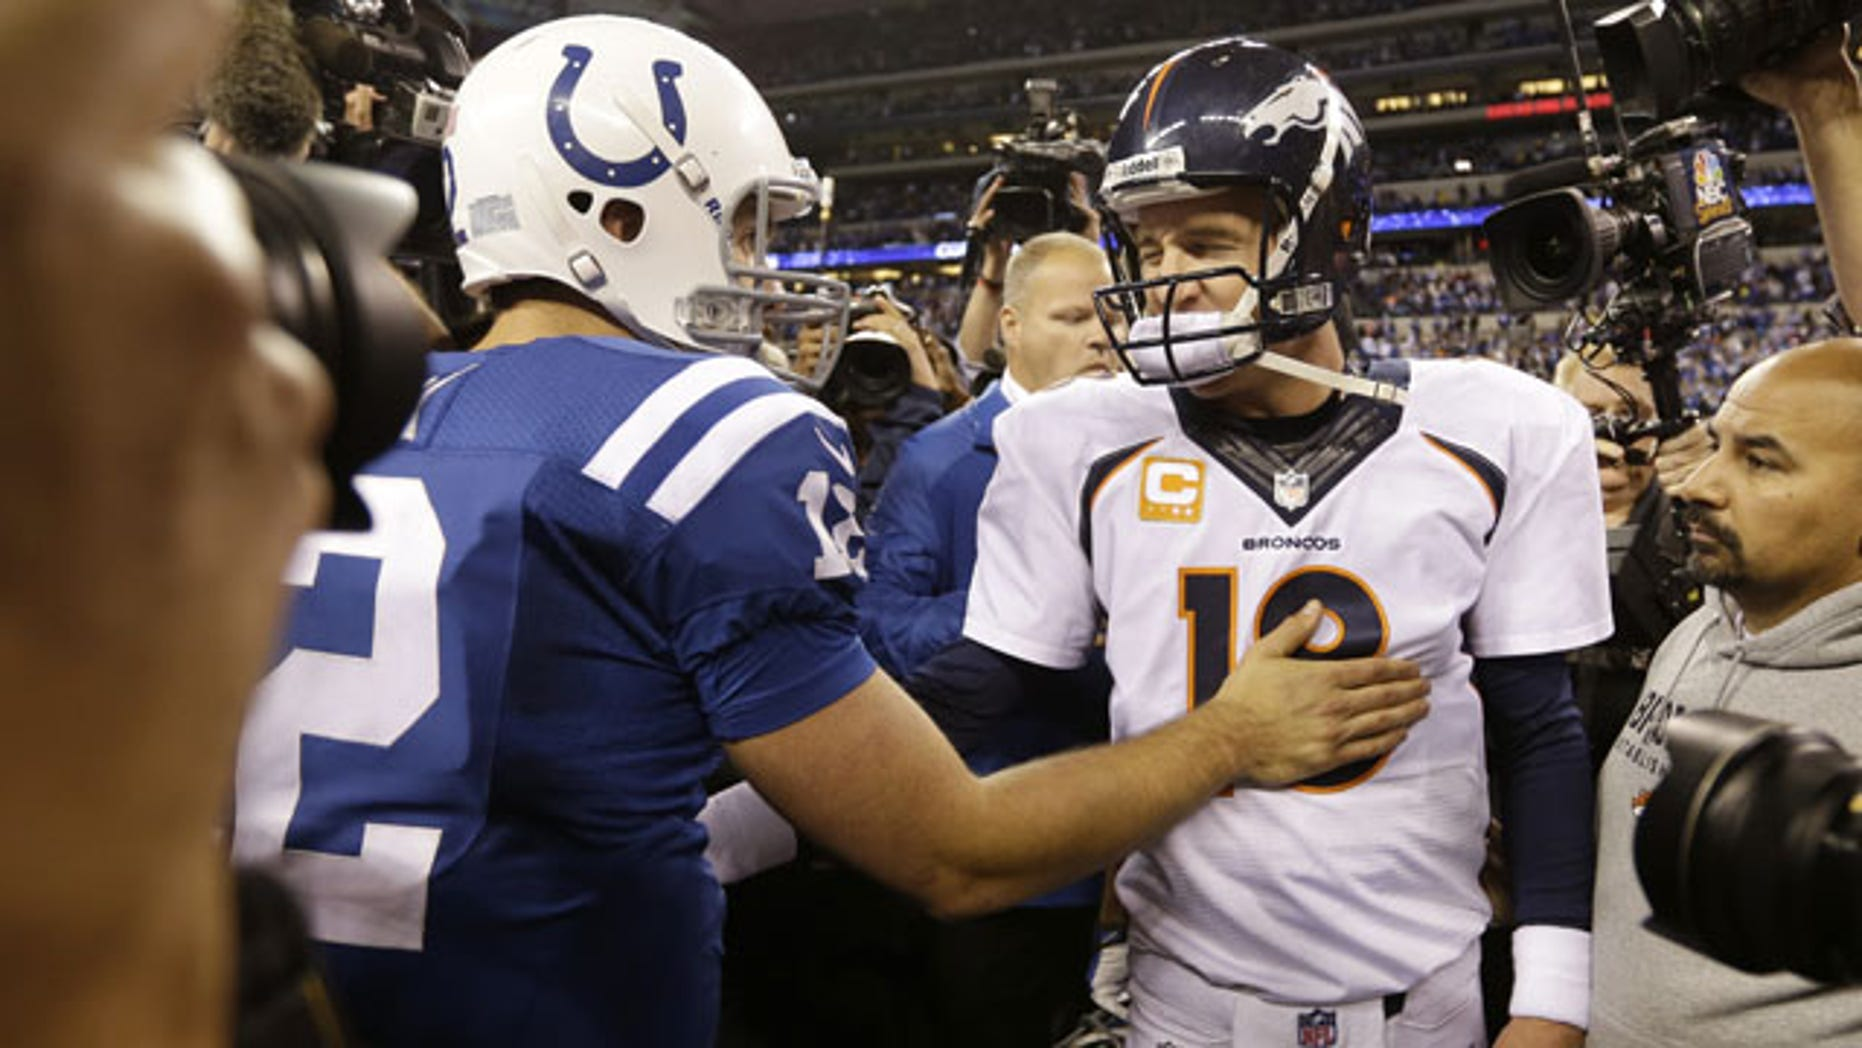 October 20, 2013: Denver Broncos quarterback Peyton Manning, right, greets Indianapolis Colts quarterback Andrew Luck (12) after an NFL football game in Indianapolis. The Colts won 39-33. (AP Photo/Michael Conroy)